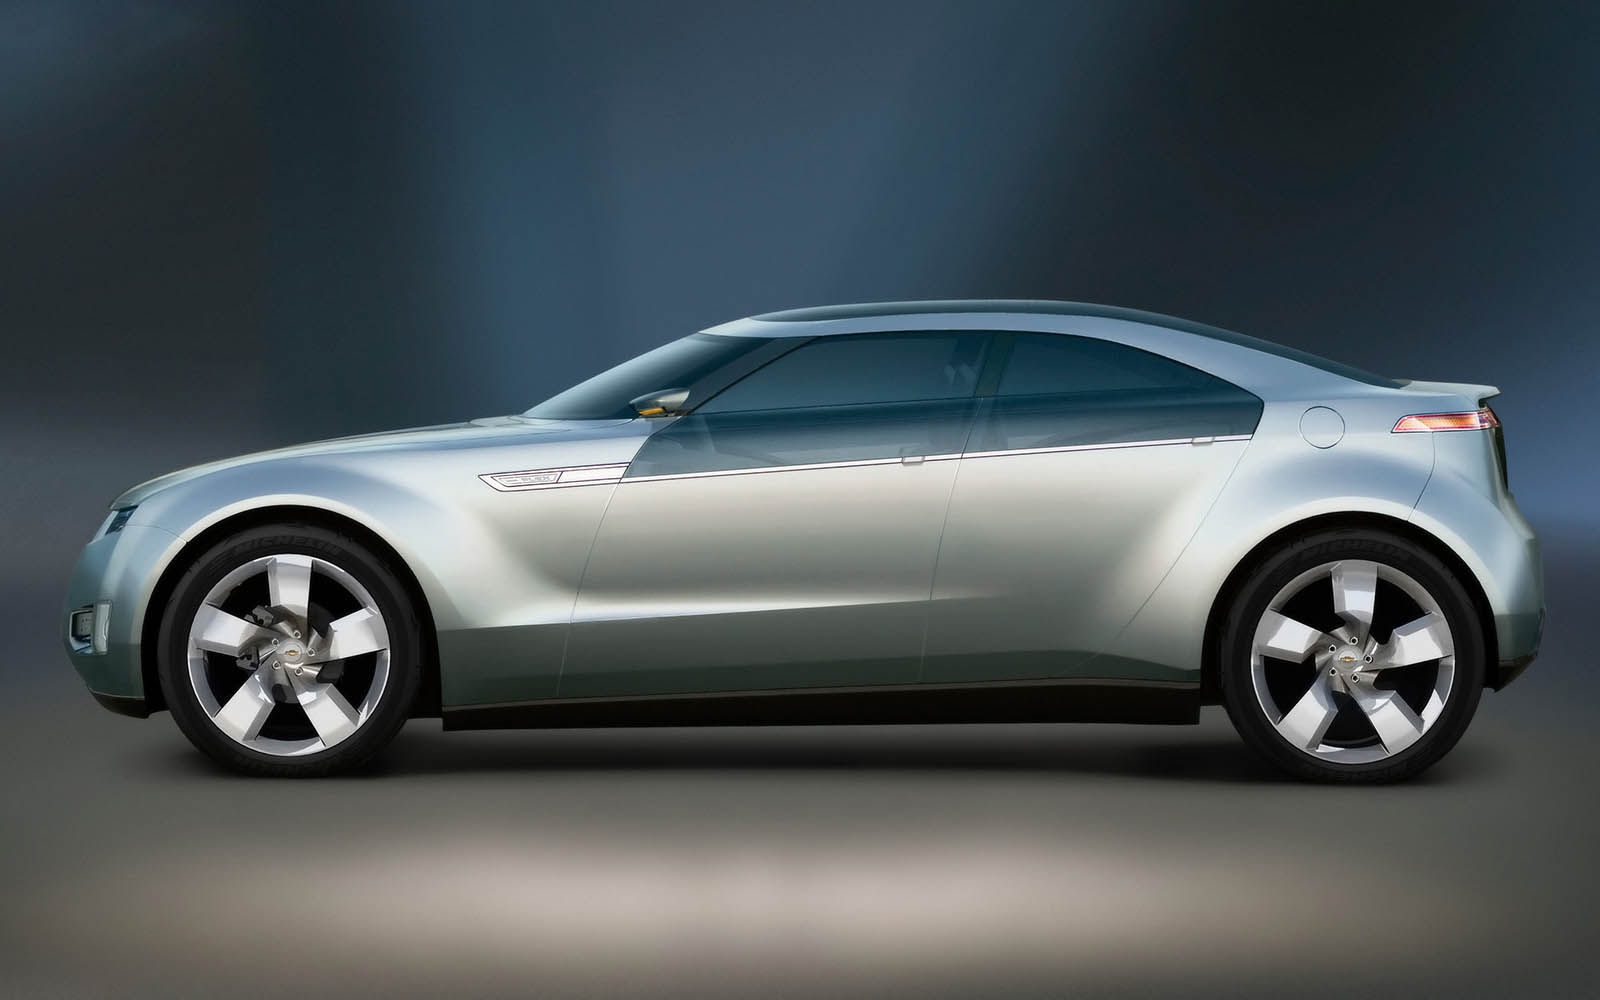 Wallpapers: Chevrolet Volt Concept Car Photos